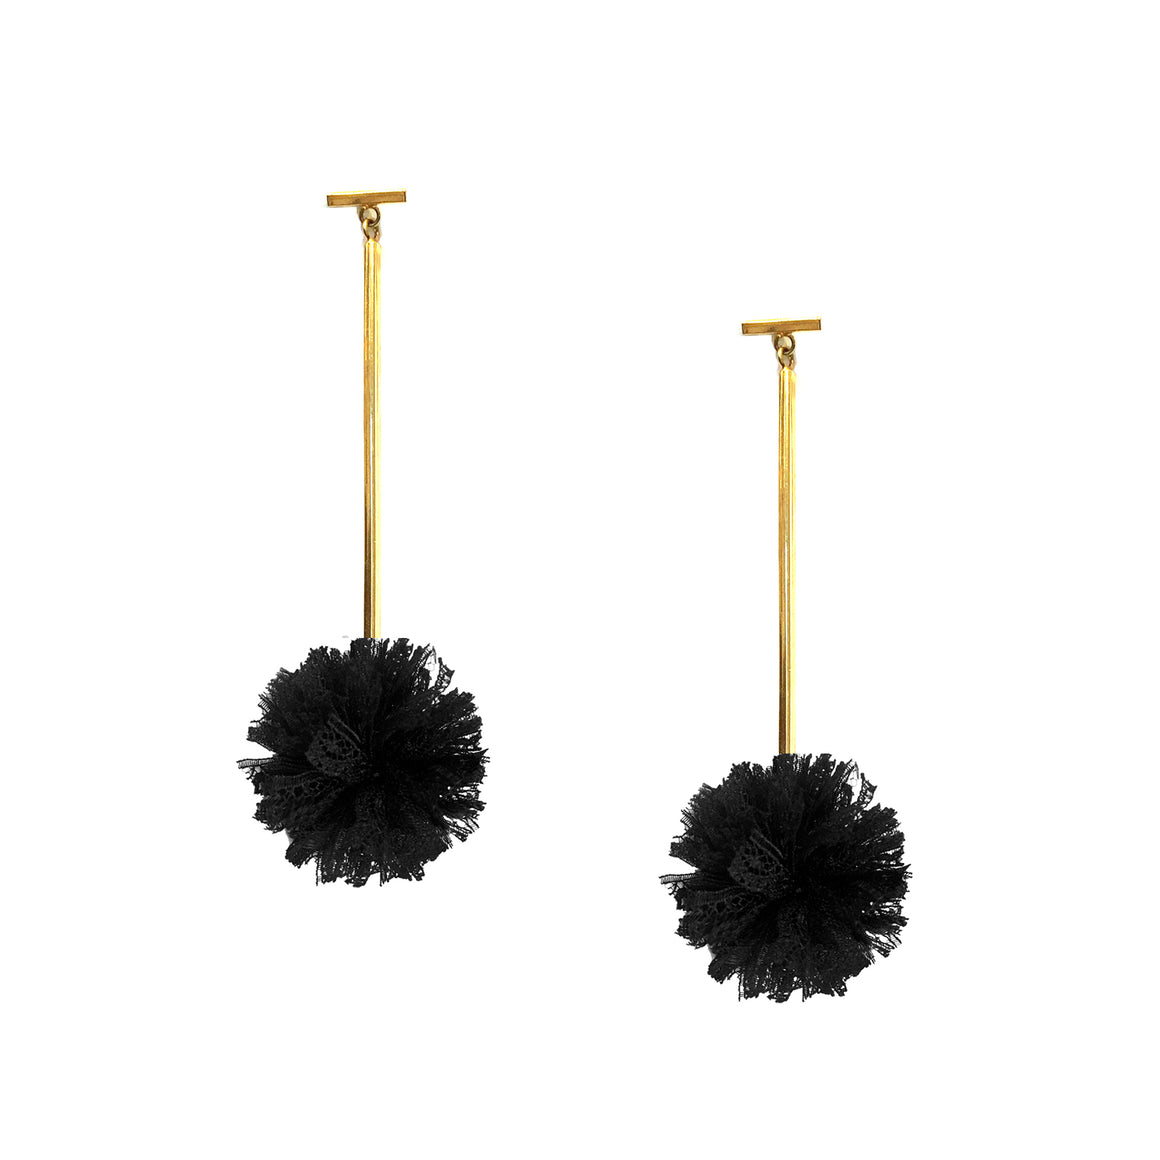 "Black 1"" Lace Pom Pom T Bar Earrings, Earrings, Tuleste, Tuleste"